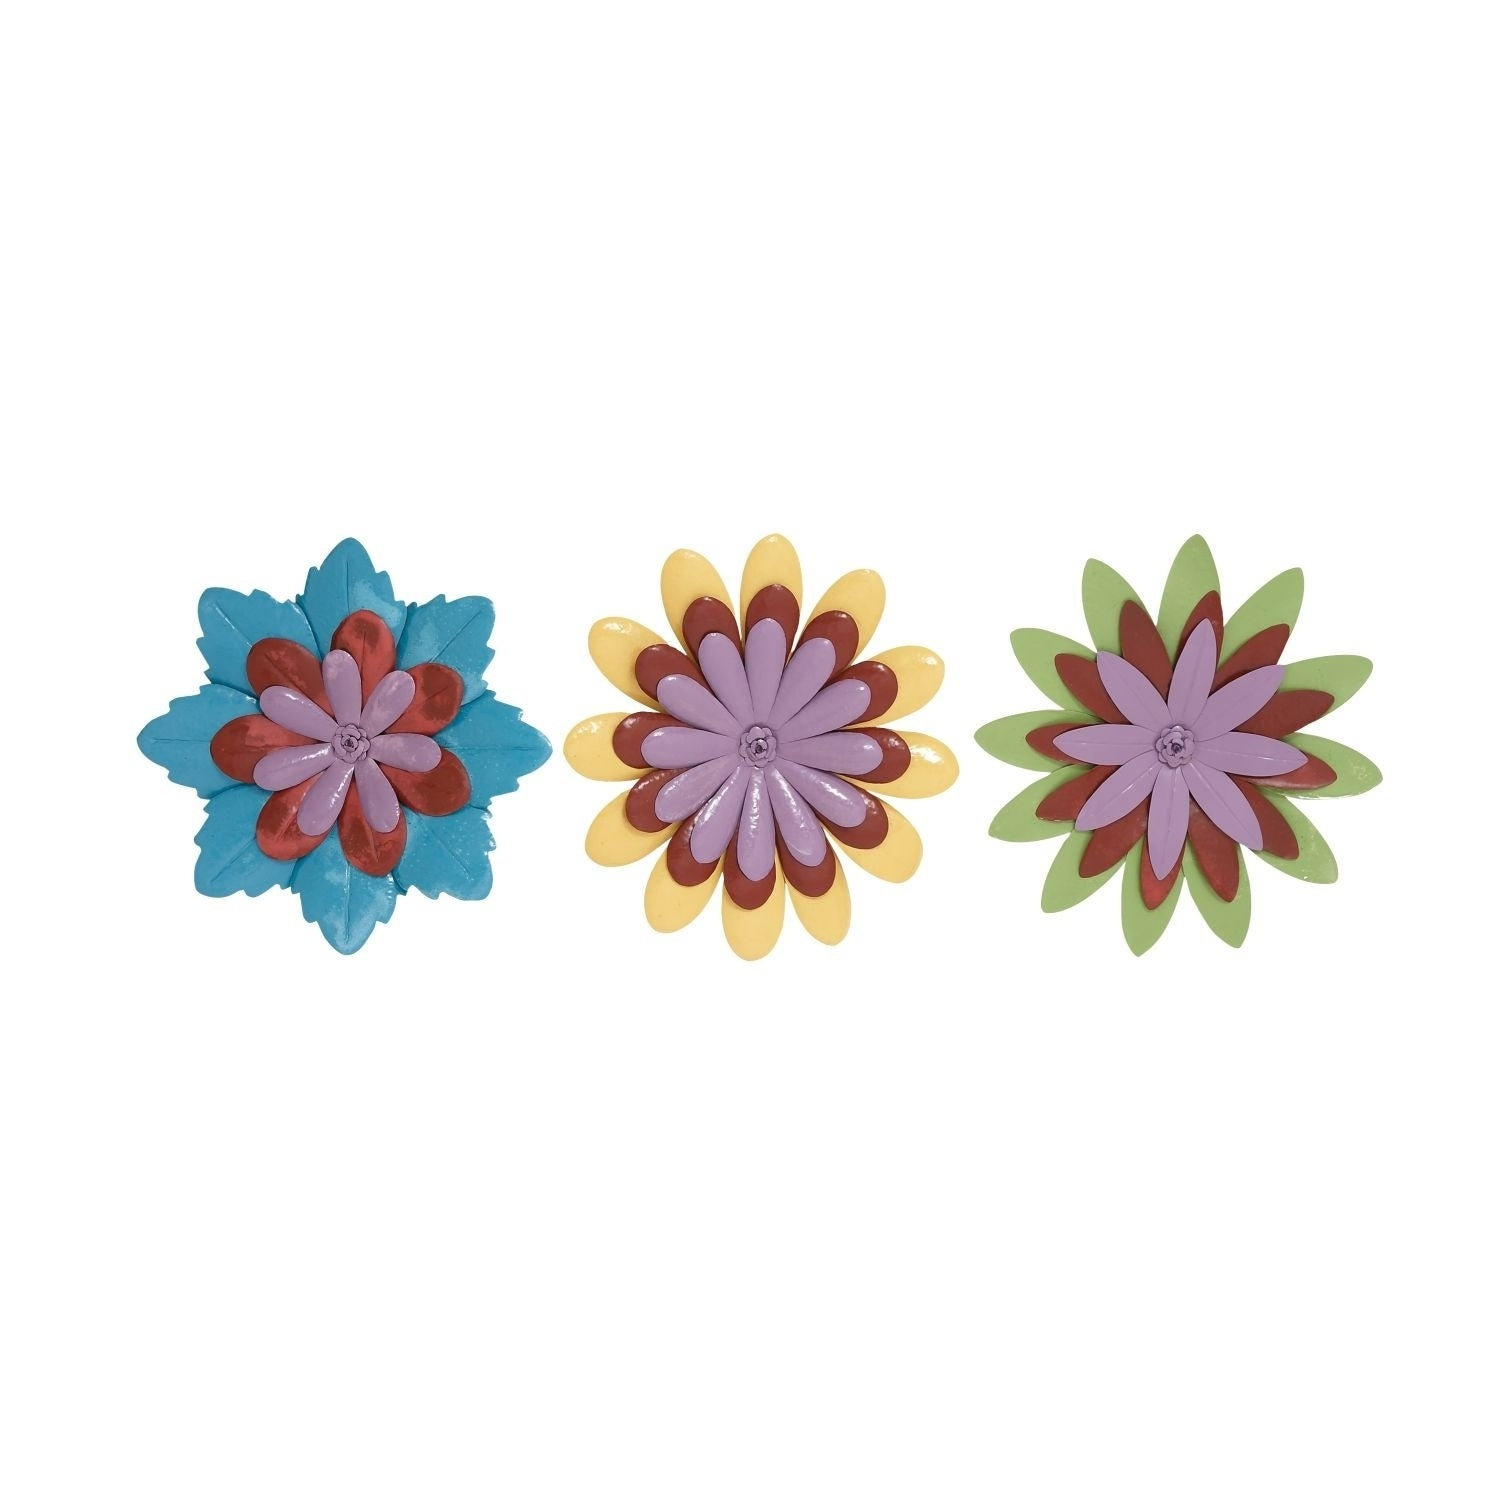 Shop Studio 350 Metal Flower Wall Decor Set Of 3, 24 Inches D – Free Within Trendy Metal Flower Wall Decor (Set Of 3) (View 12 of 20)